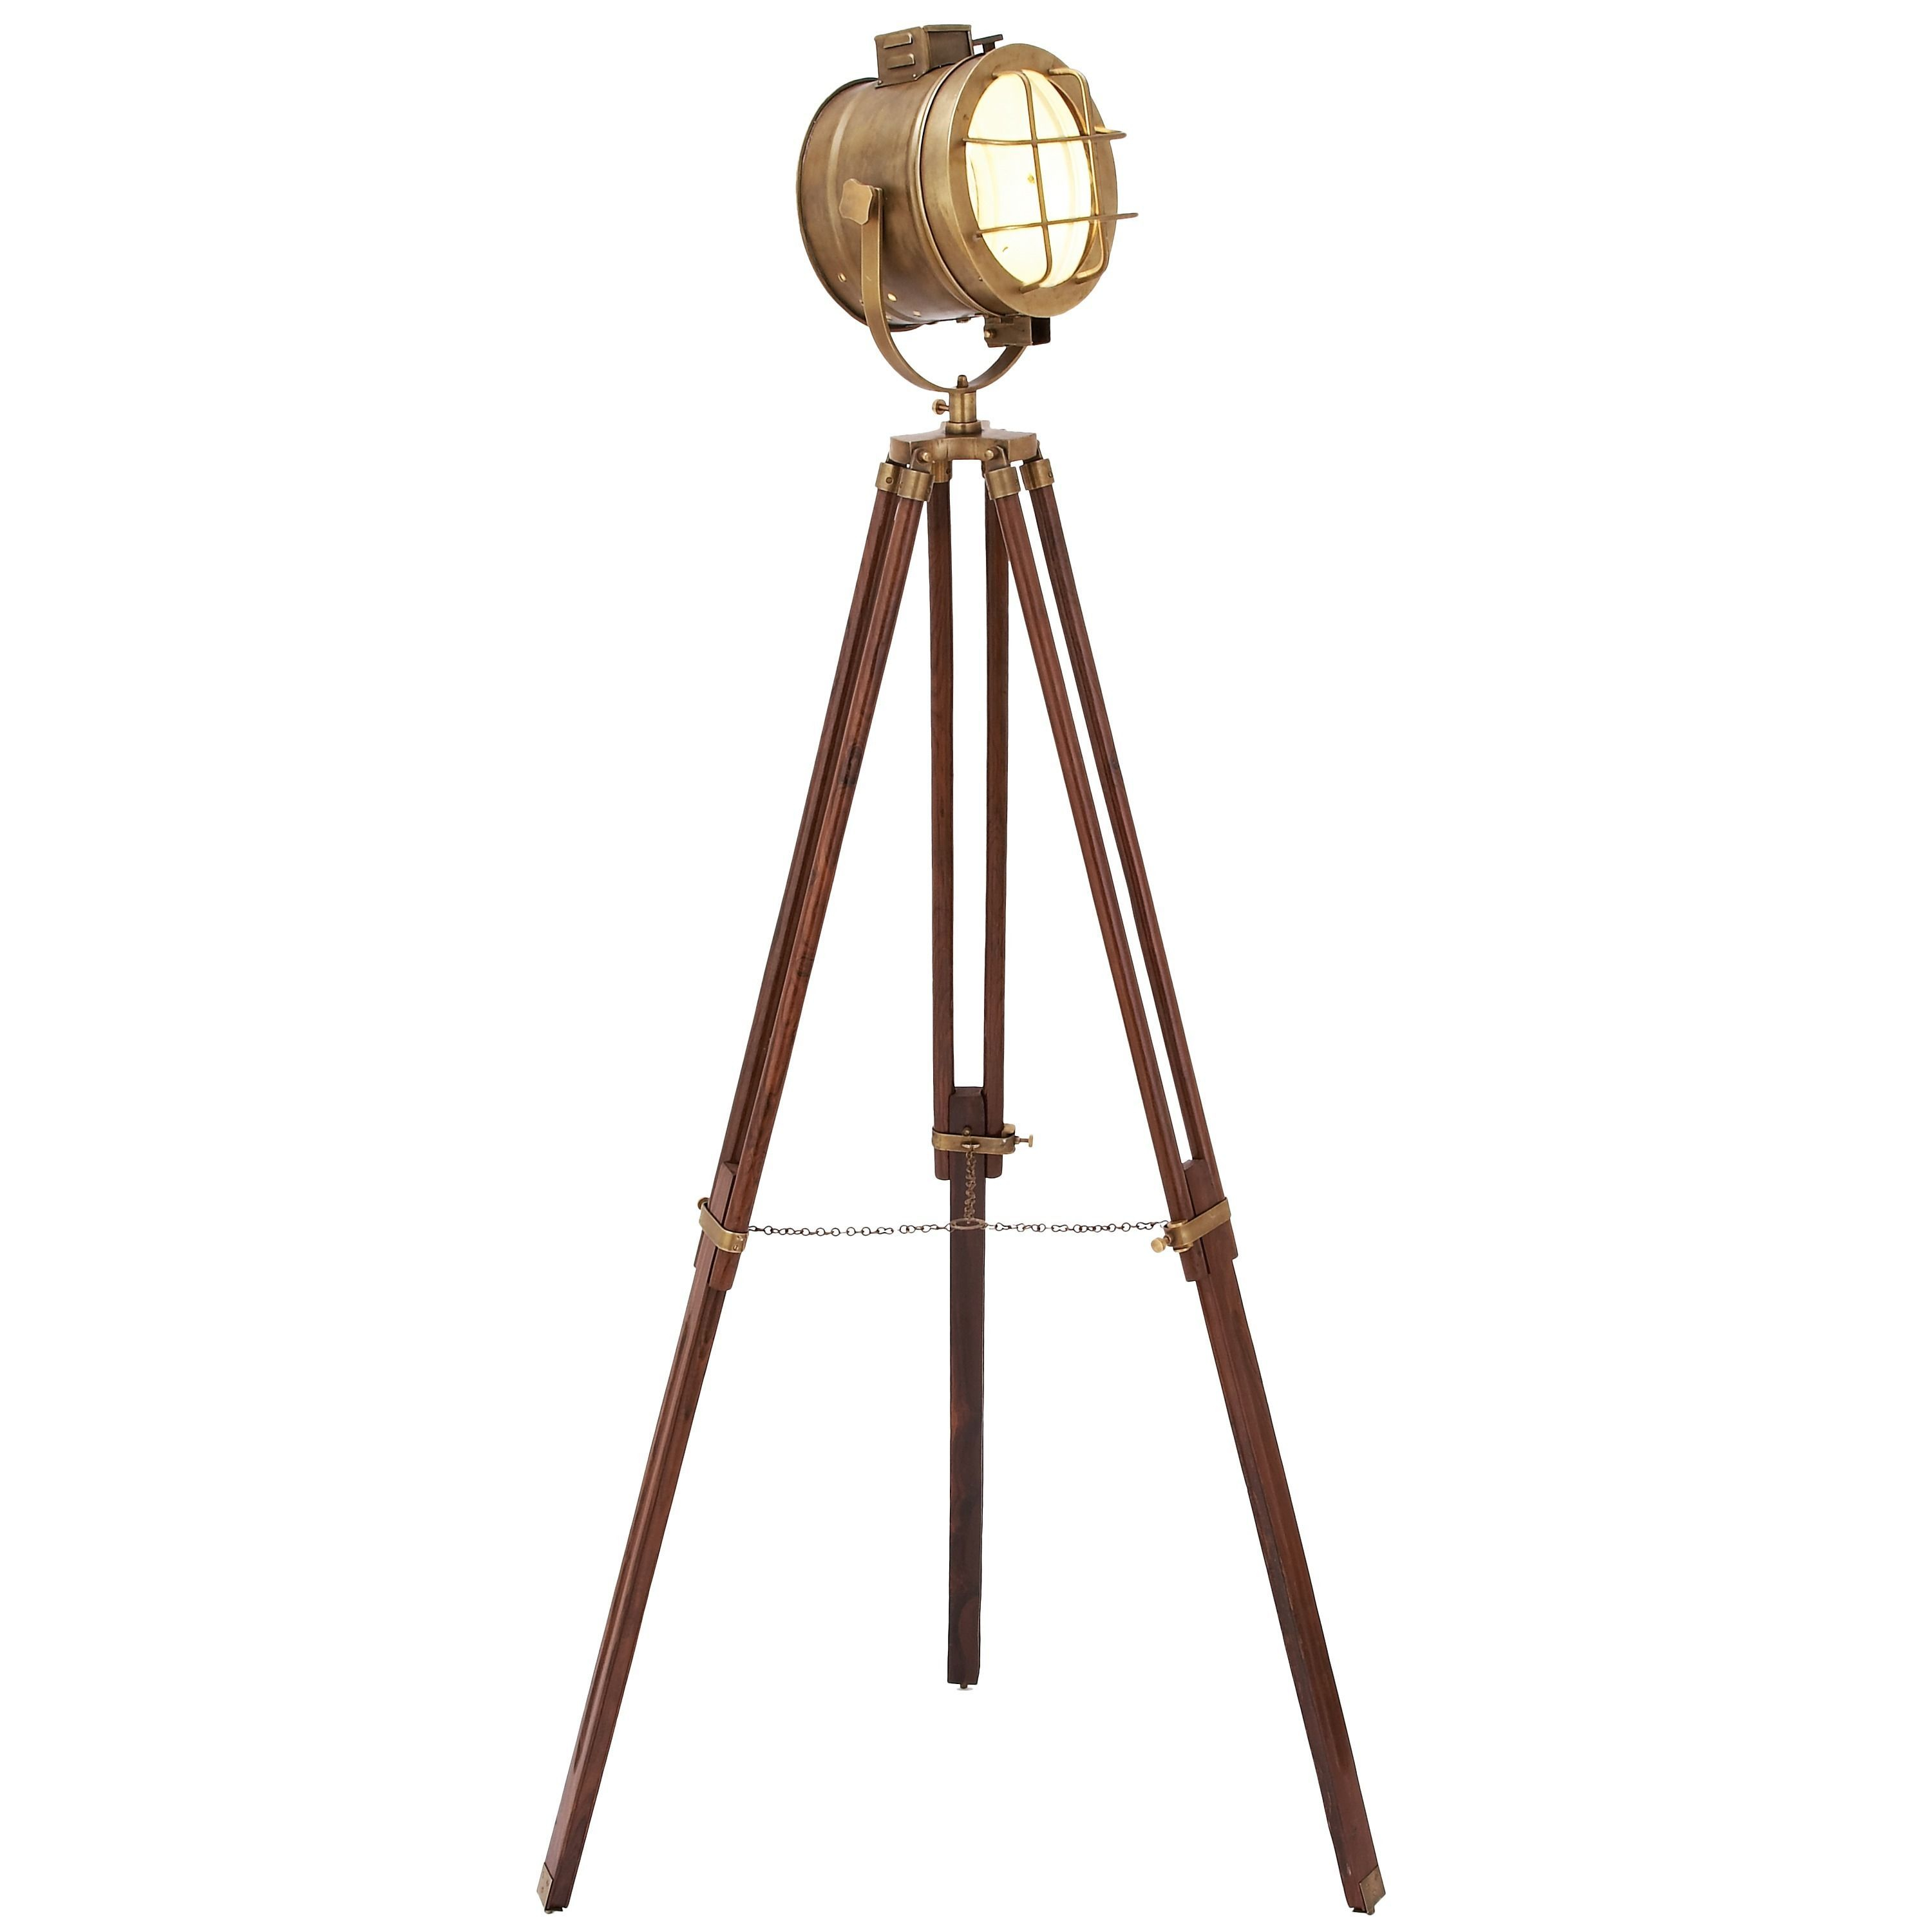 Cinema Studio Prop Light With Tripod Adjustable Floor Lamp for sizing 3000 X 3000